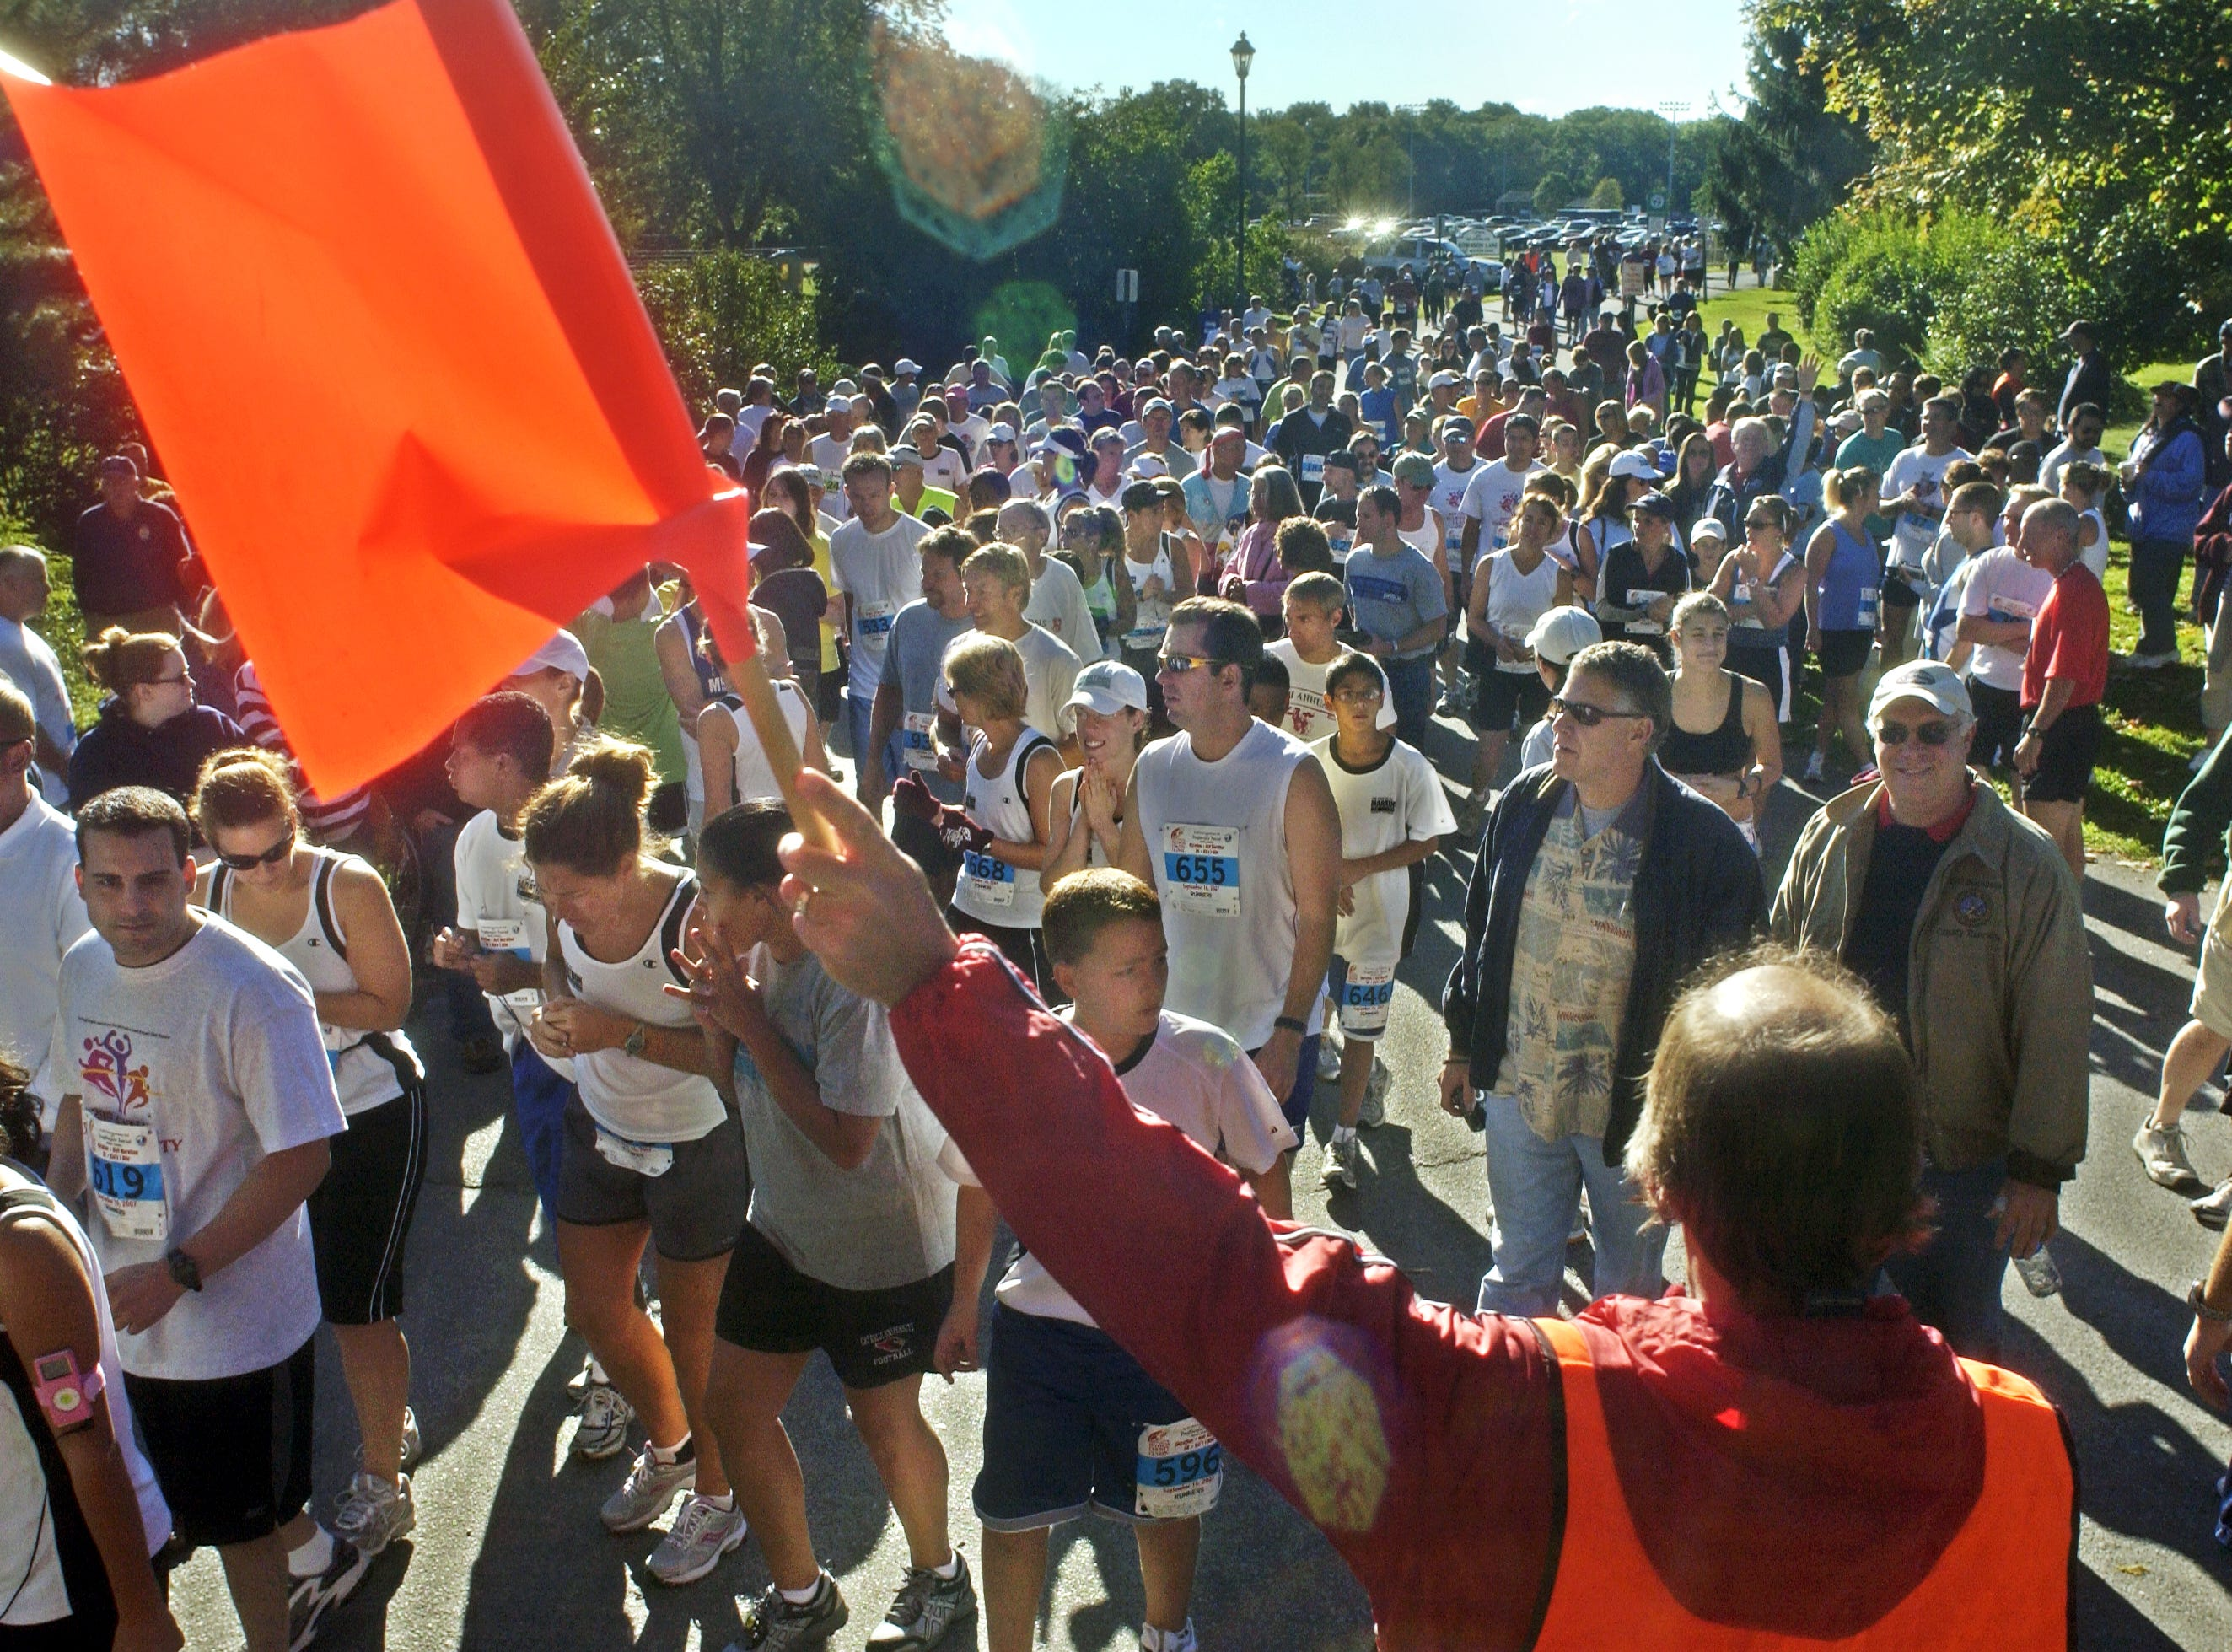 Tony Pignataro of LaGrange directs pedestrians and vehicles with a flag during the 29th annual Dutchess County Classic Sunday, Sept. 16, 2007 in the Town of Wappinger.